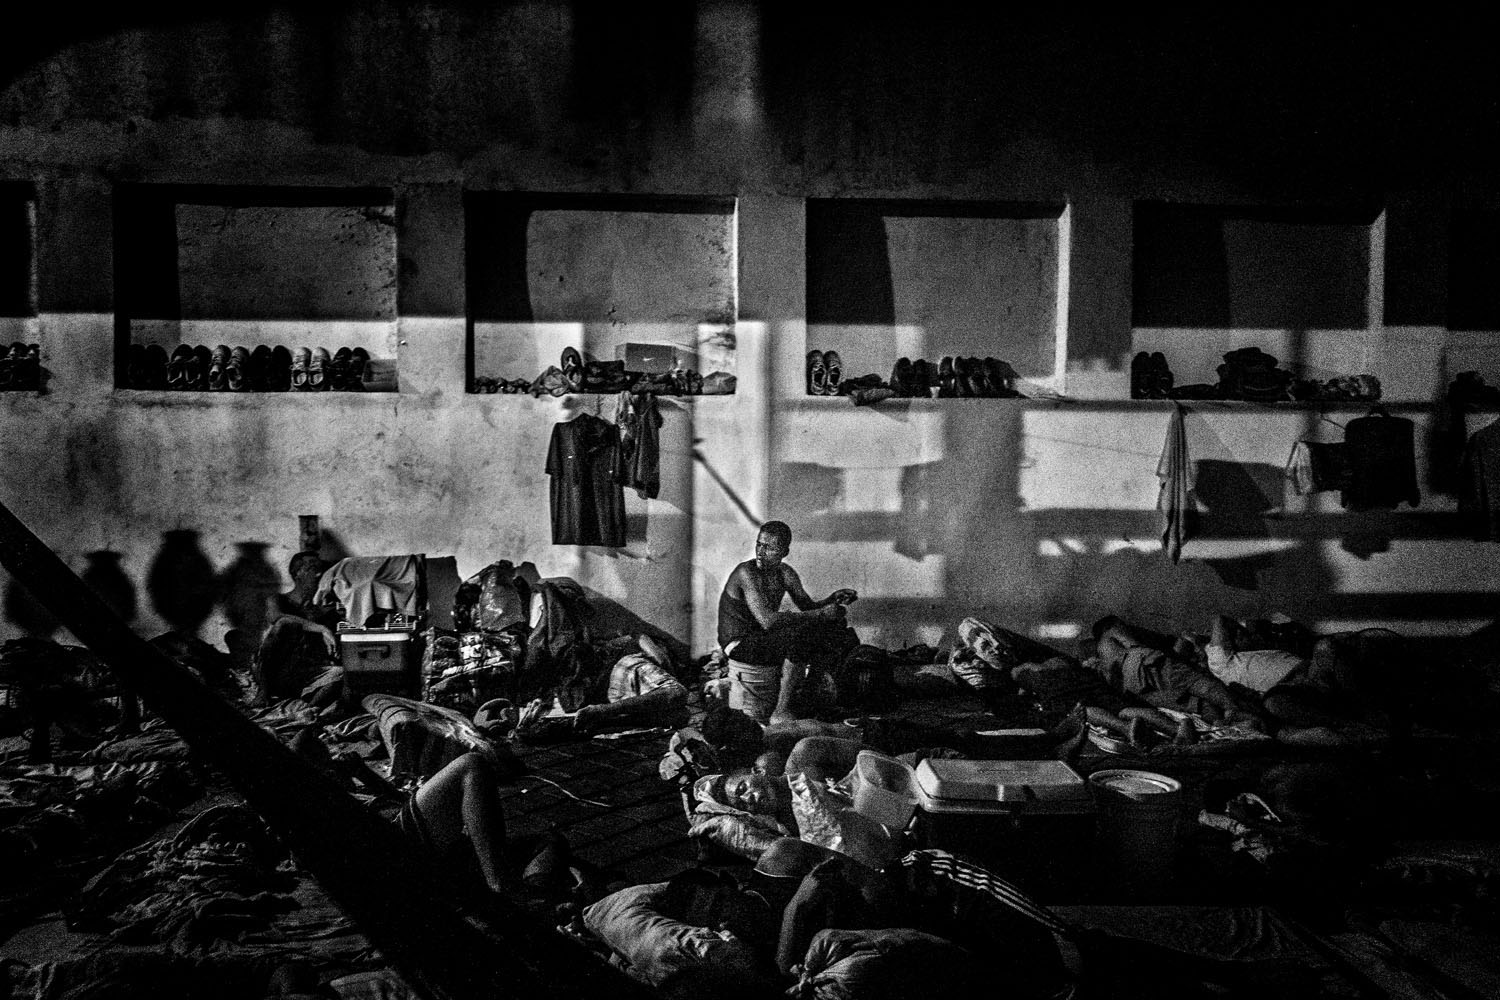 The following photographs were taken at the Vista Hermosa prison in Ciudad Bolivar, Venezuela in March and April 2013.                                                              Drug users and those who violate the unwritten rules imposed by the inmates who control Vista Hermosa are confined to one area known as La Guerrilla.